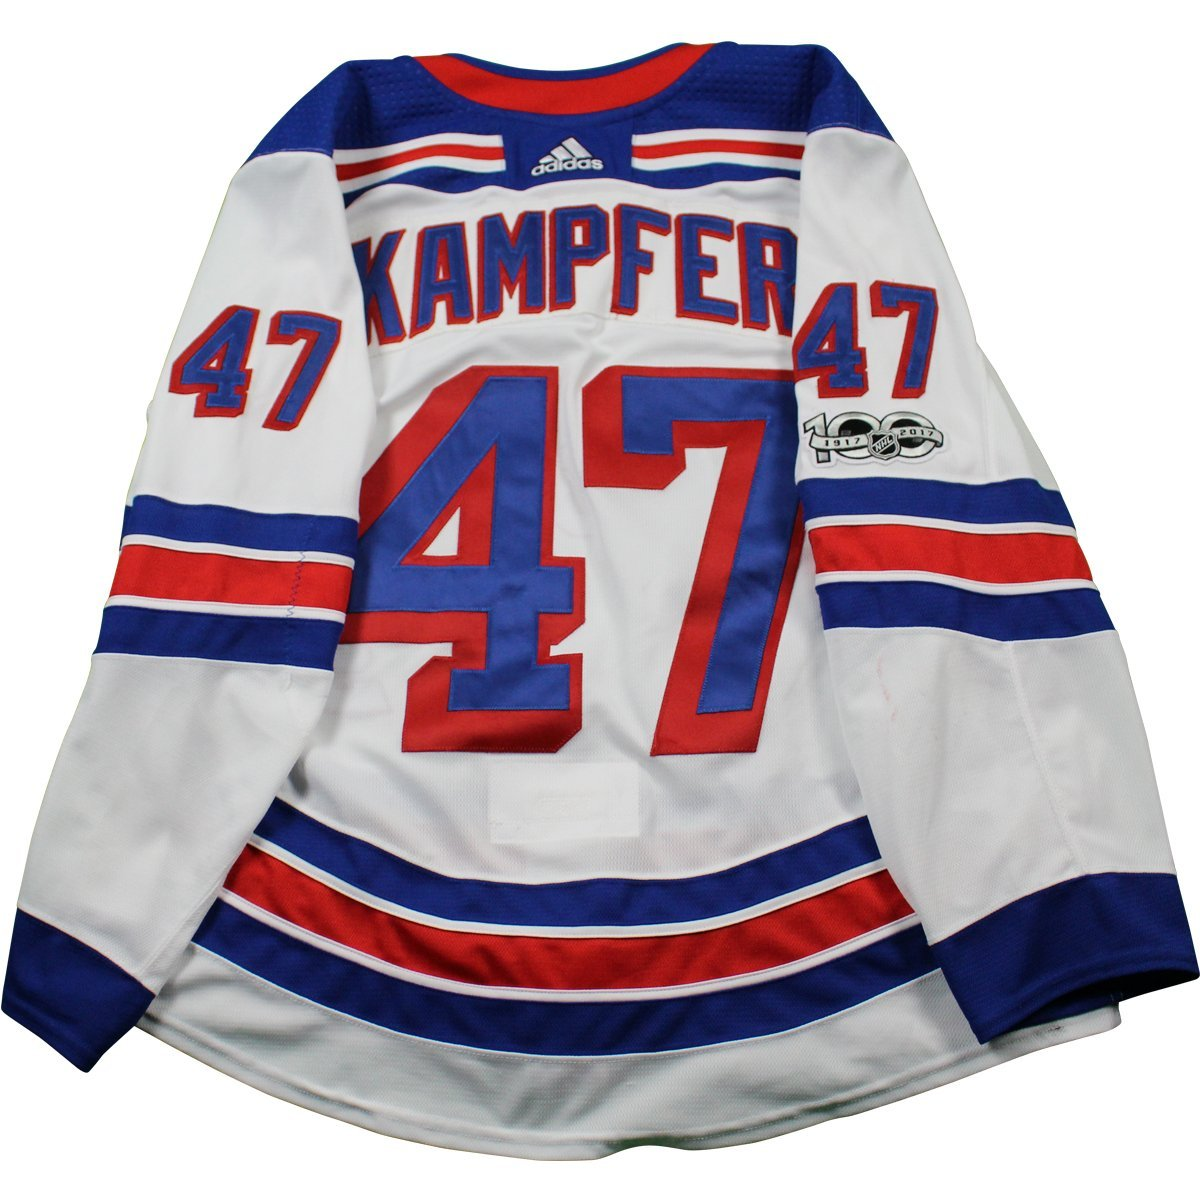 new style b1bf9 90623 Steven Kampfer New York Rangers 2017-2018 Game Used #47 Set 1 White Jersey  w/ 100th Anniversary Patch (10/7/2017 - 11/22/2017)